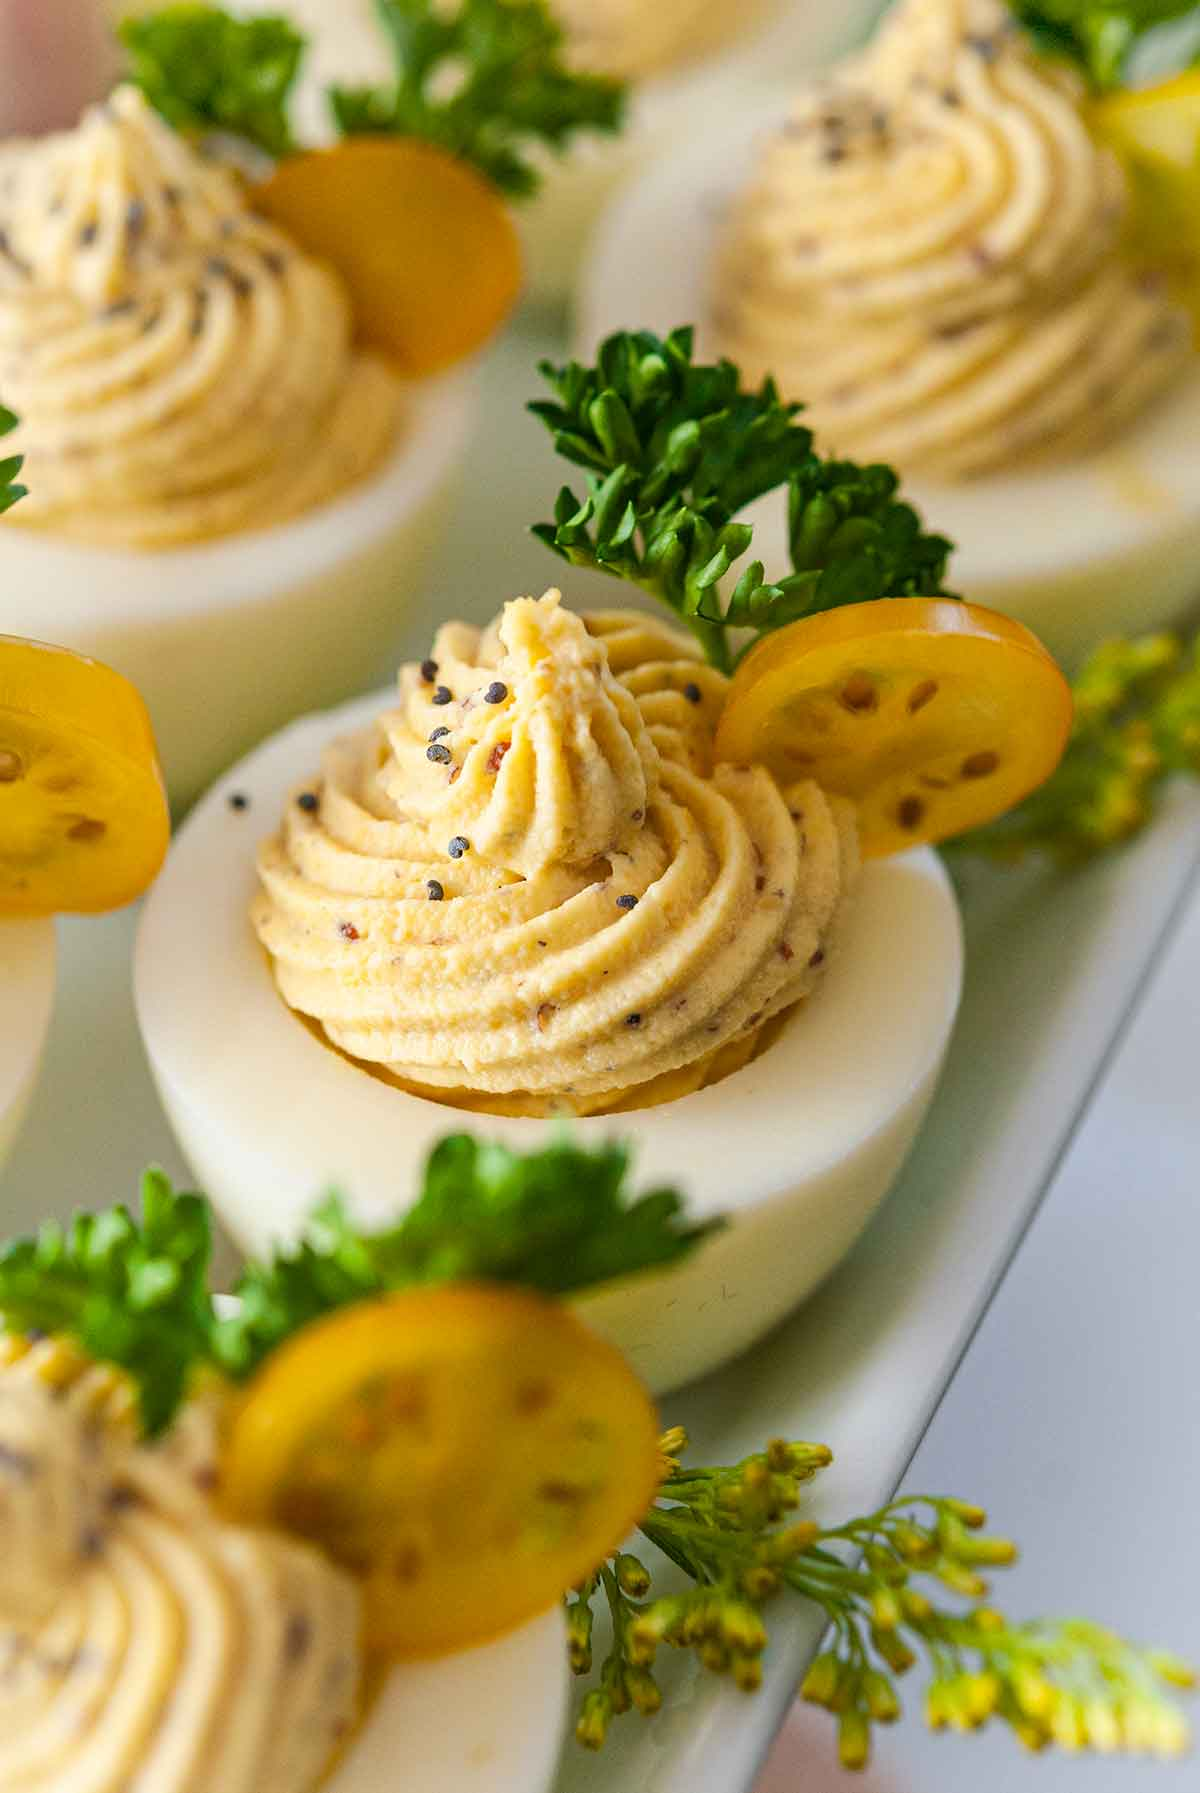 4 deviled eggs on a plate, garnished with tomatoes, parsley and poppyseeds.